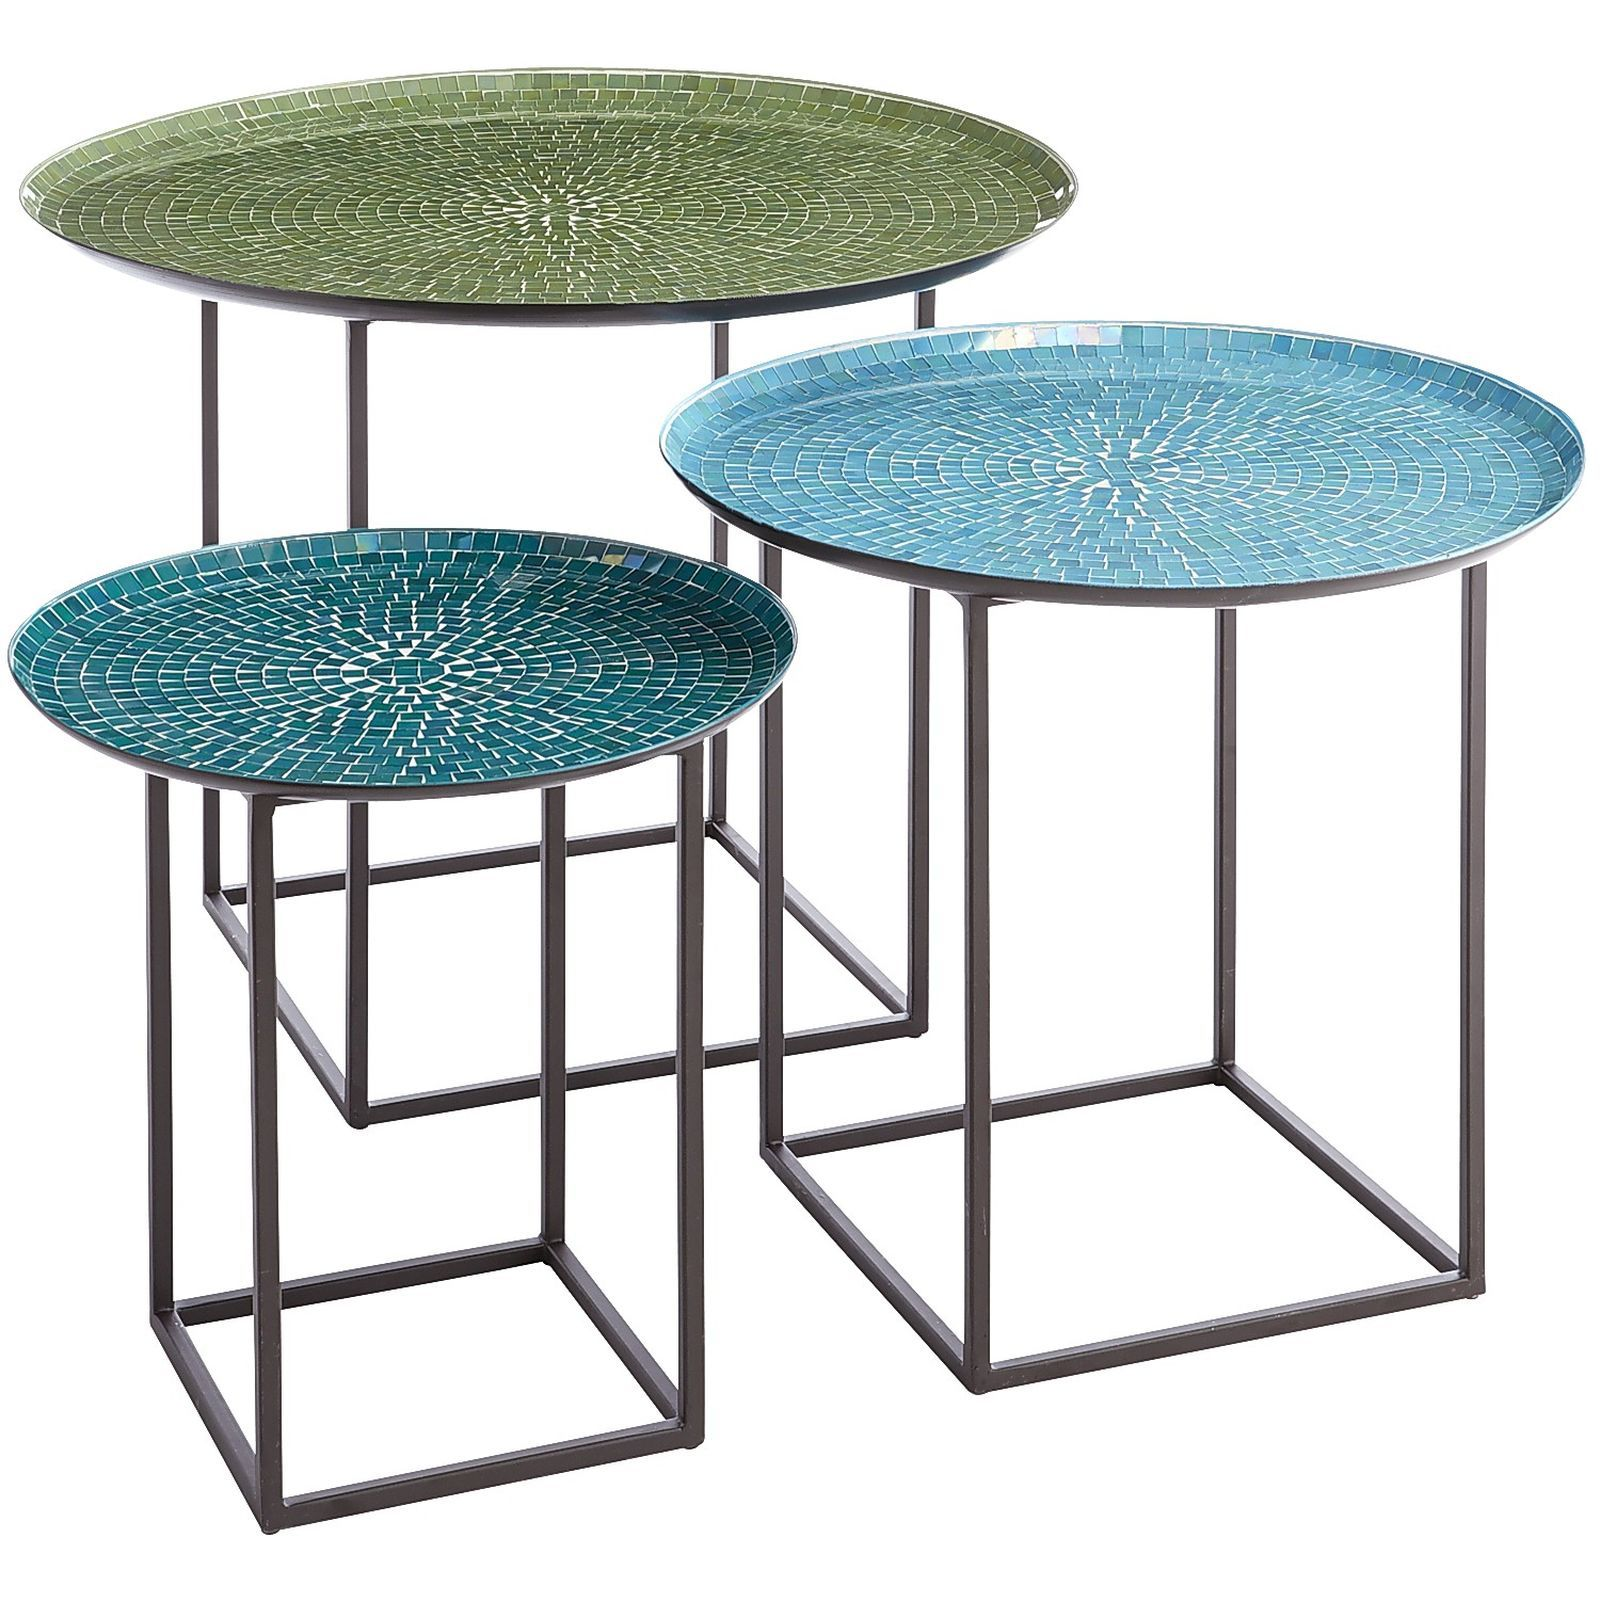 annabelle blue piece mosaic coffee table set mosaics and accent outdoor tall narrow target kitchen nesting dining chairs vintage metal garden storage solutions glass clearance two